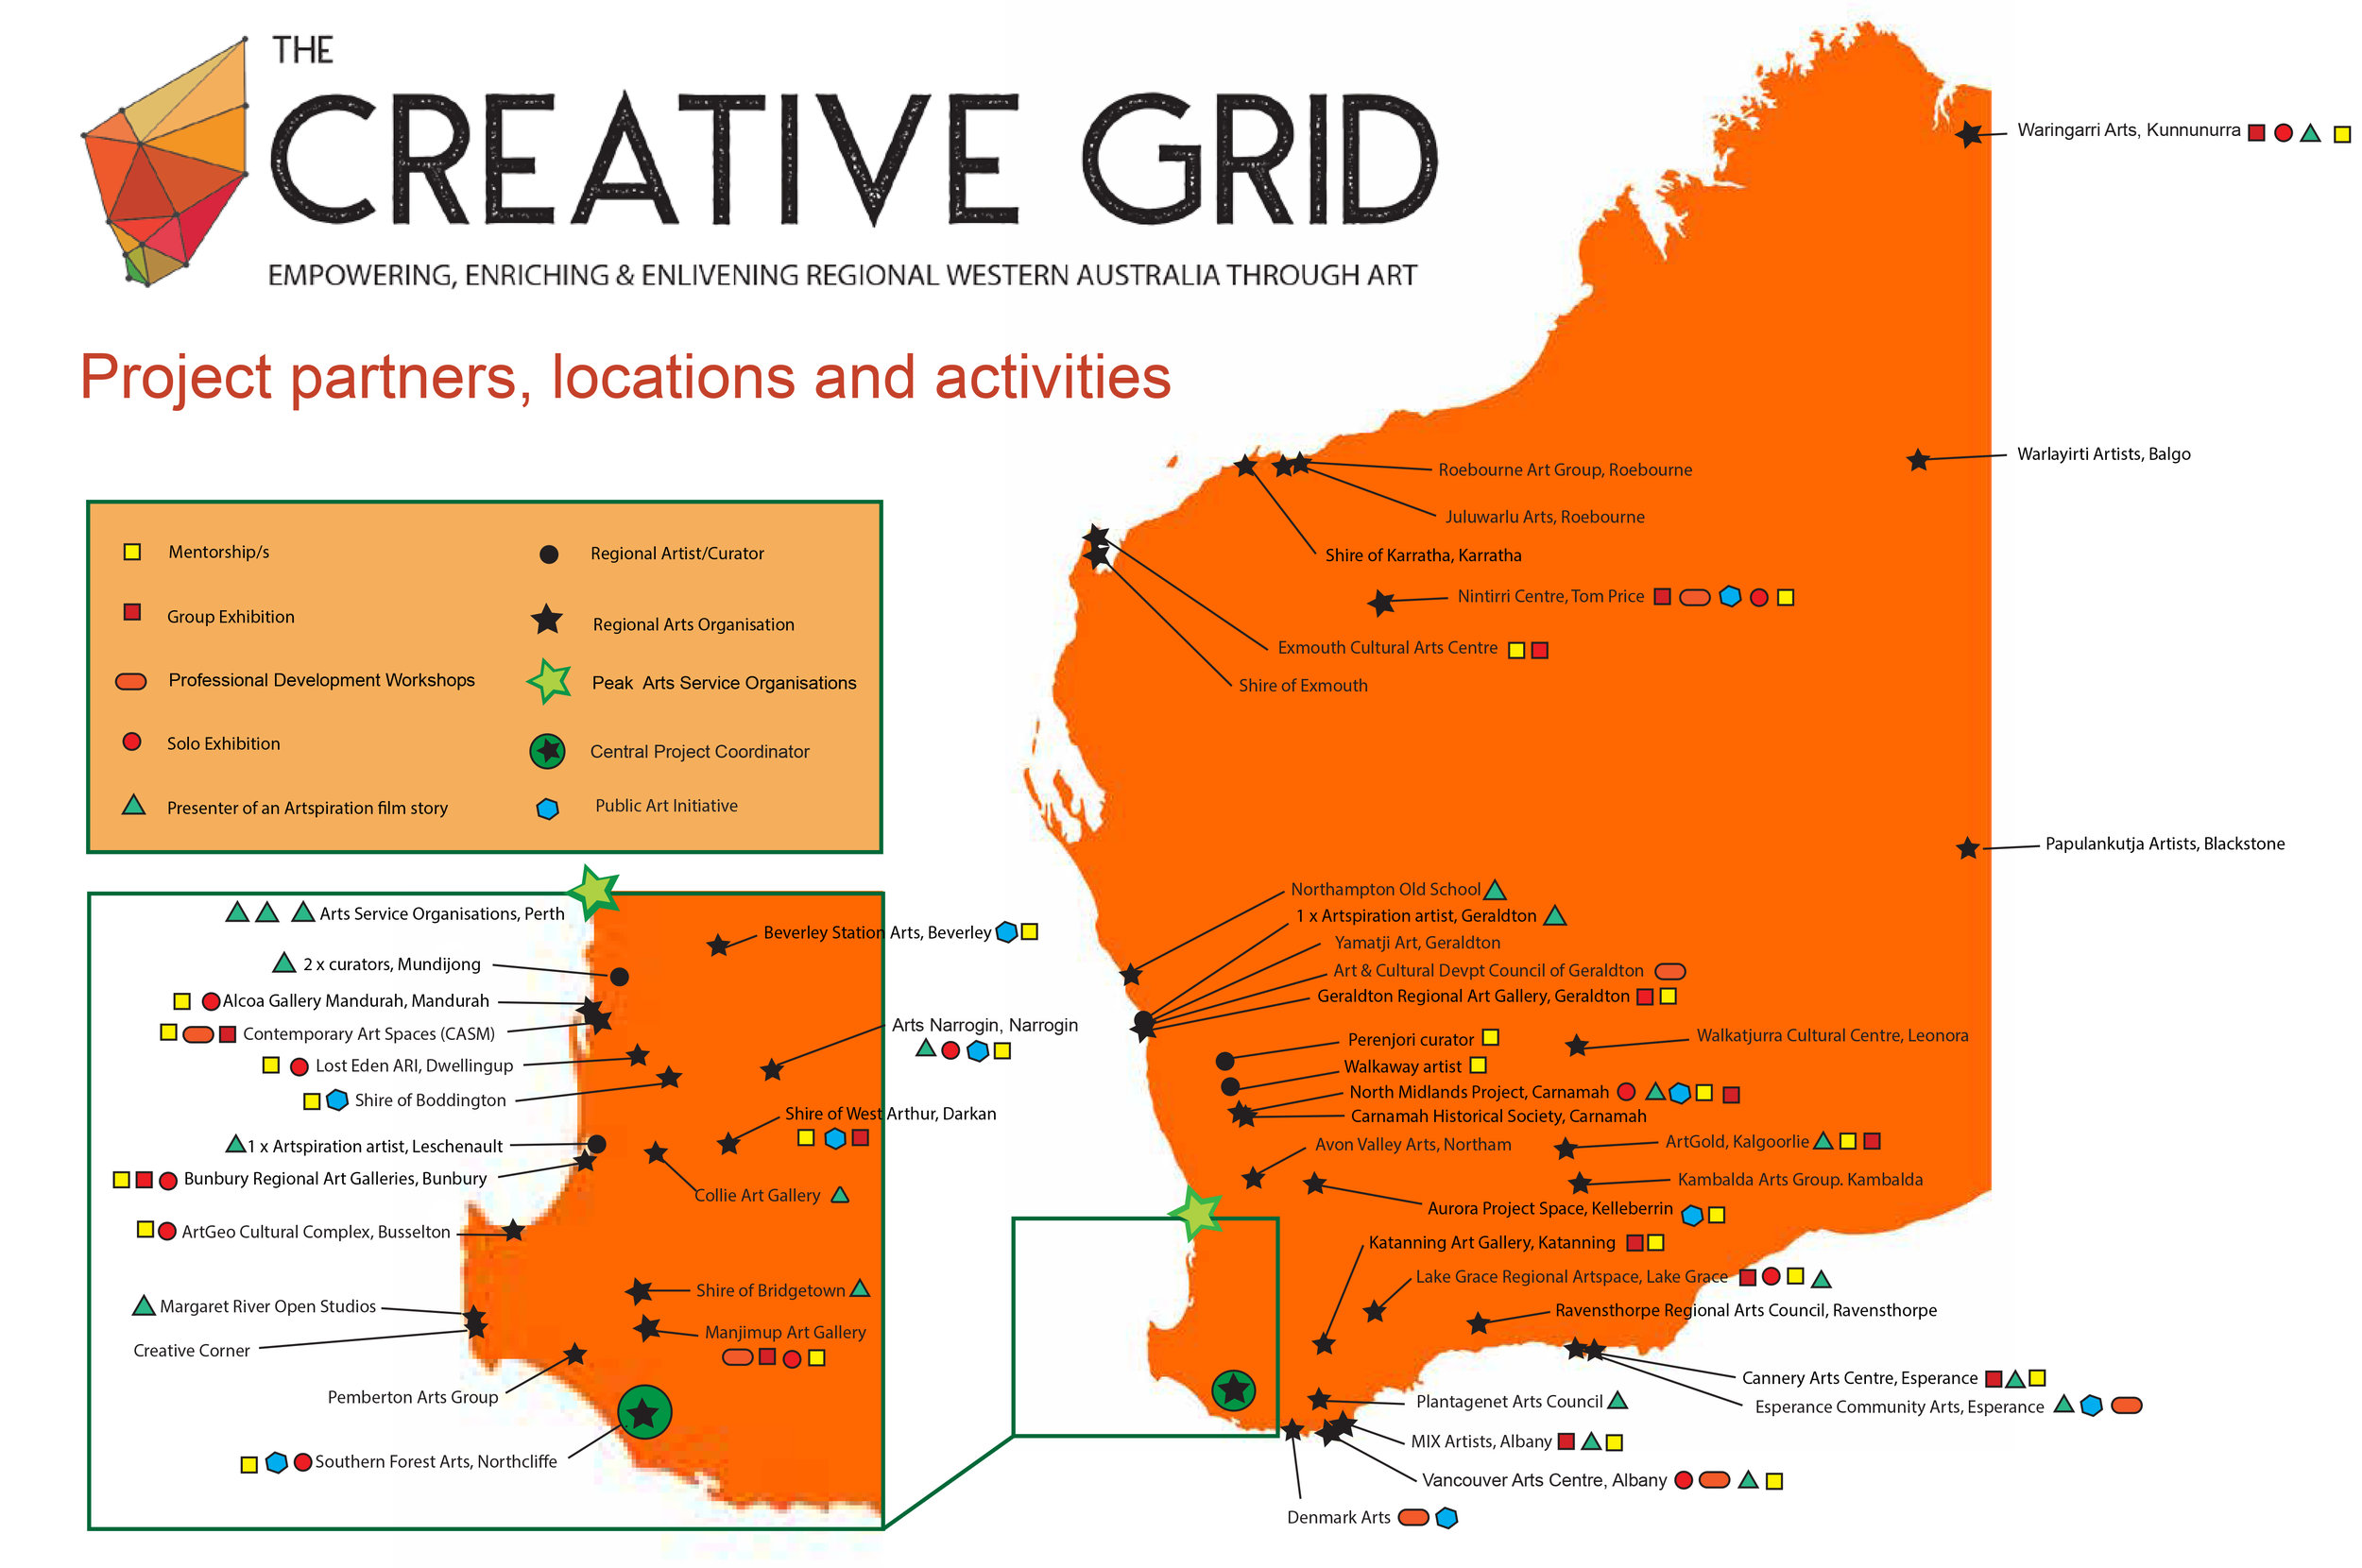 Creative Grid - Map of project partners, locations & activities (August 2018) email.jpg